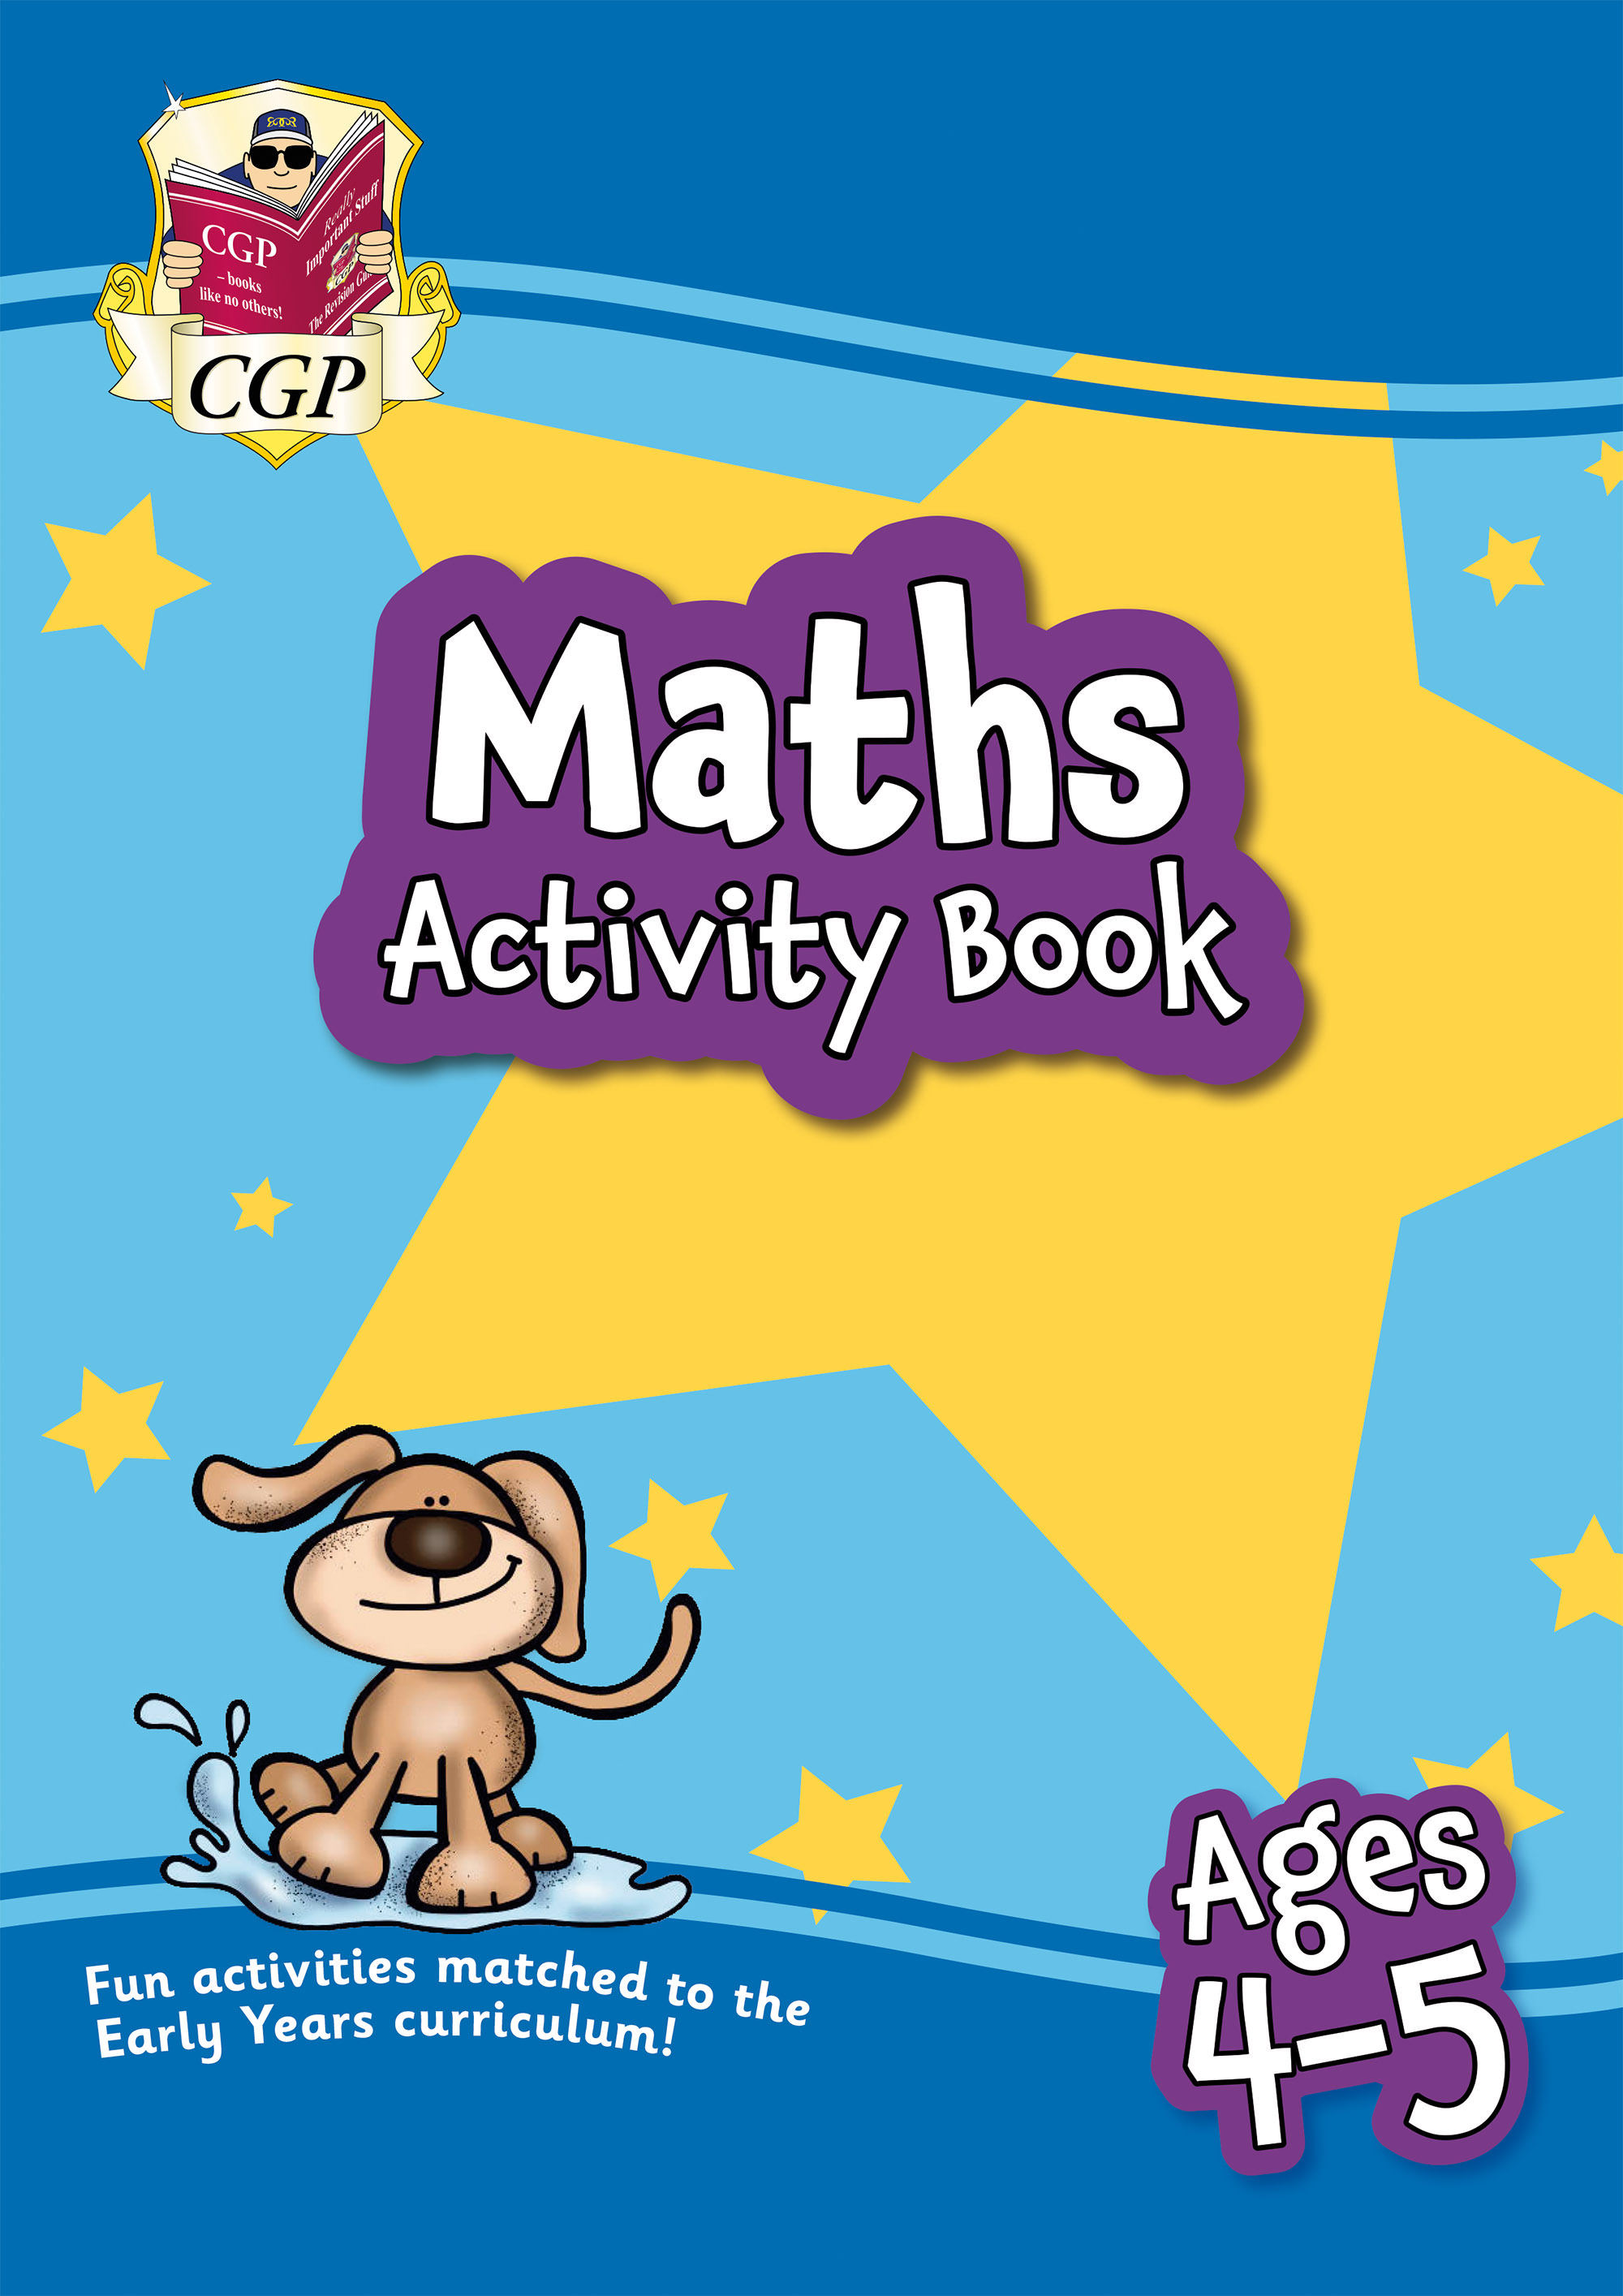 MPFRQ01D - New Maths Activity Book for Ages 4-5: Perfect for Catch-Up and Home Learning